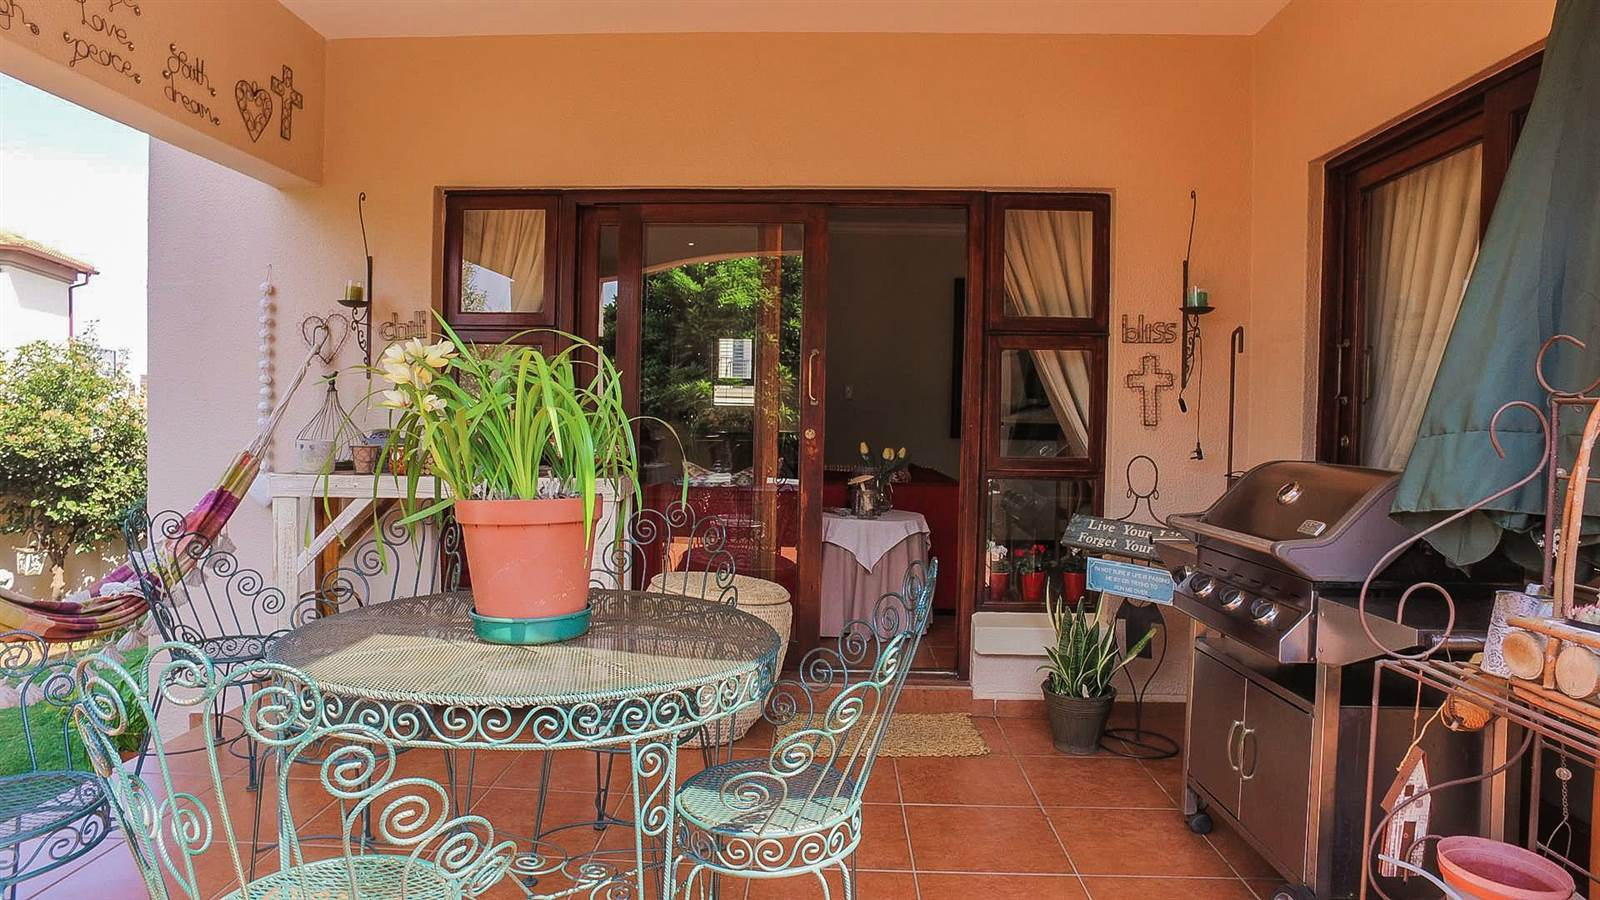 4 Bedroom Townhouse for sale in Mulbarton ENT0067436 : photo#7